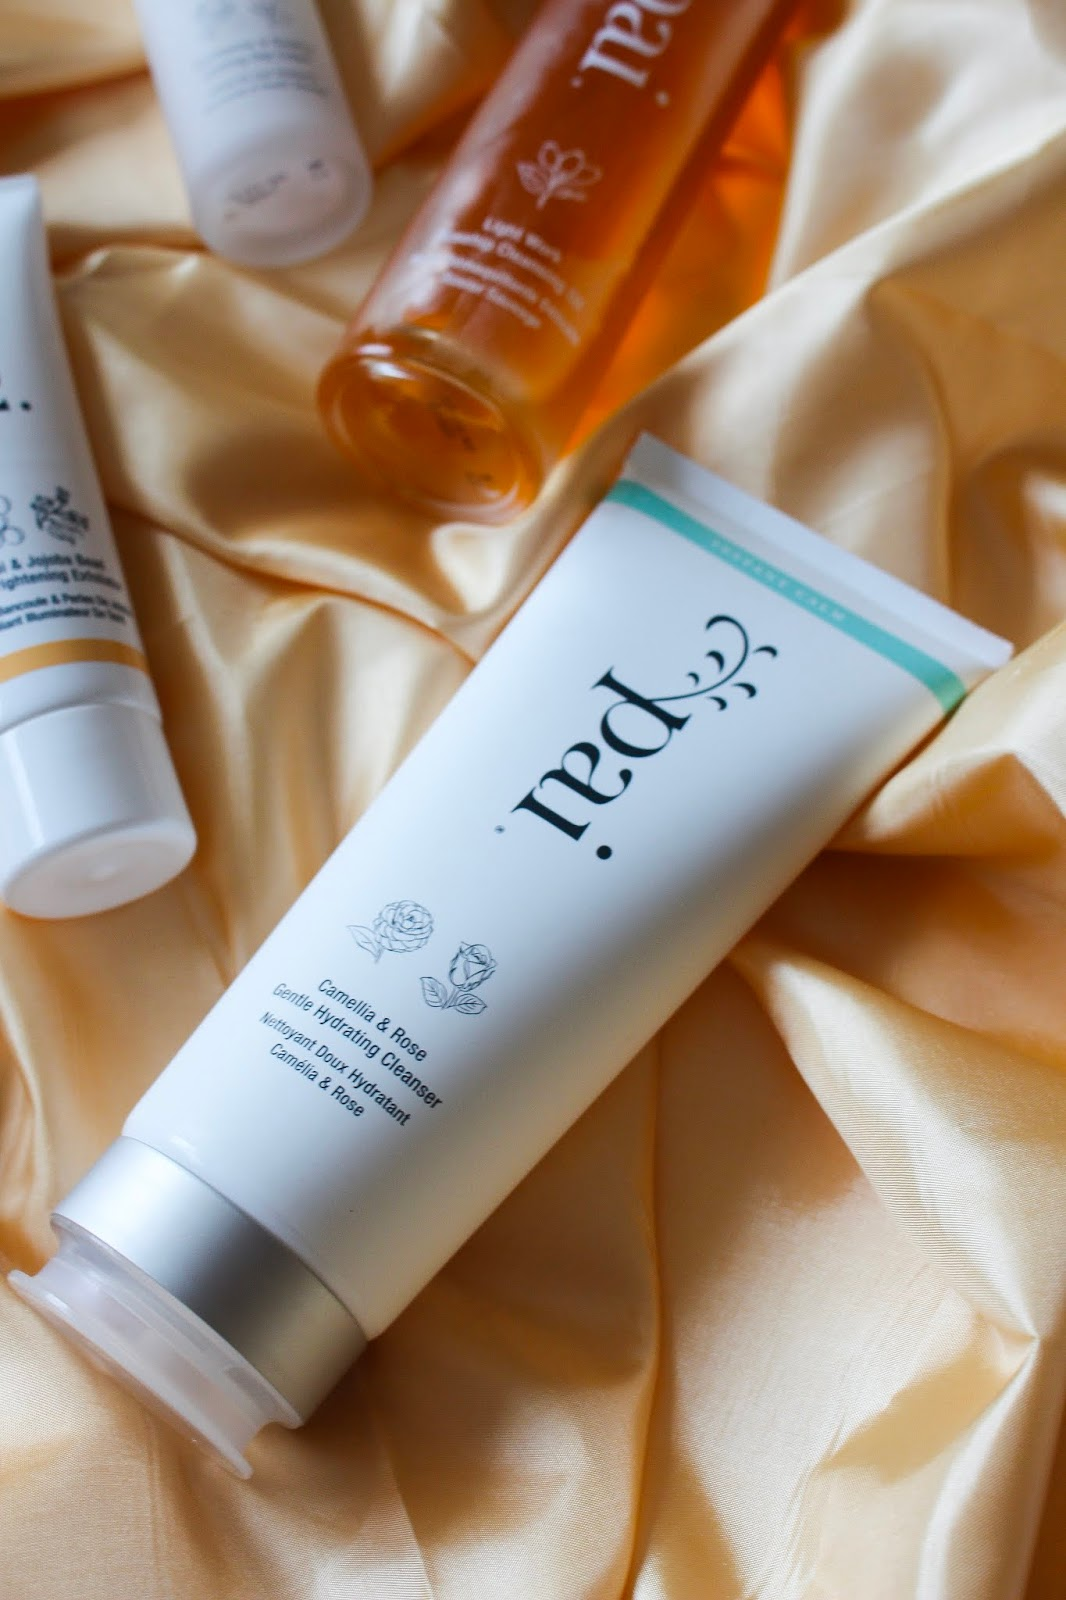 Pau Skincare Chamomile & Rosehip Calming Day Cream, Pai Skincare Rosehip Oil, rosehip oil, benefits of reshape, benefits of organic beauty, benefits of jojoba, Pai Skincare Kukui & Jojoba Bead Skin Brightening Exfoliator review, Vegan beauty, clean beauty, organic beauty, best beauty brands for sensitive skin, best uk vegan beauty brands, Pai Skincare Lightwork Rosehip Cleansing Oil review, Pai Skincare Camellia + Rose Gentle Hydrating Cleanser review